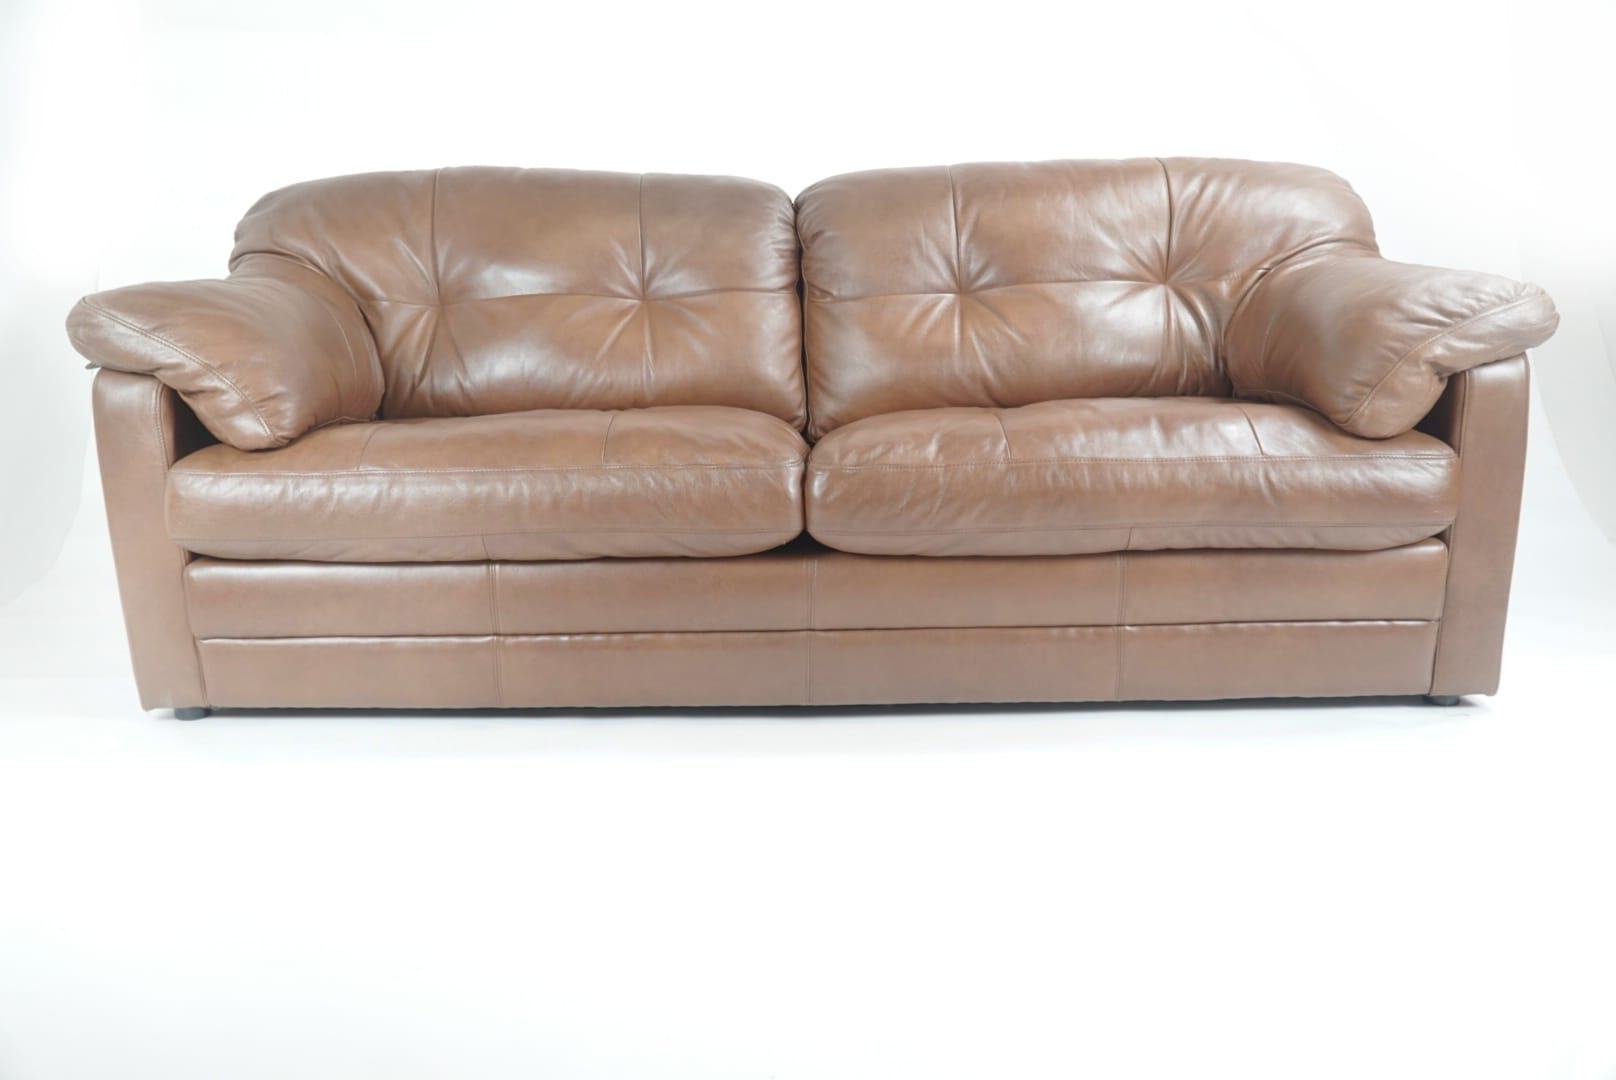 Bailey 3 Seater Sofa - OUTLET